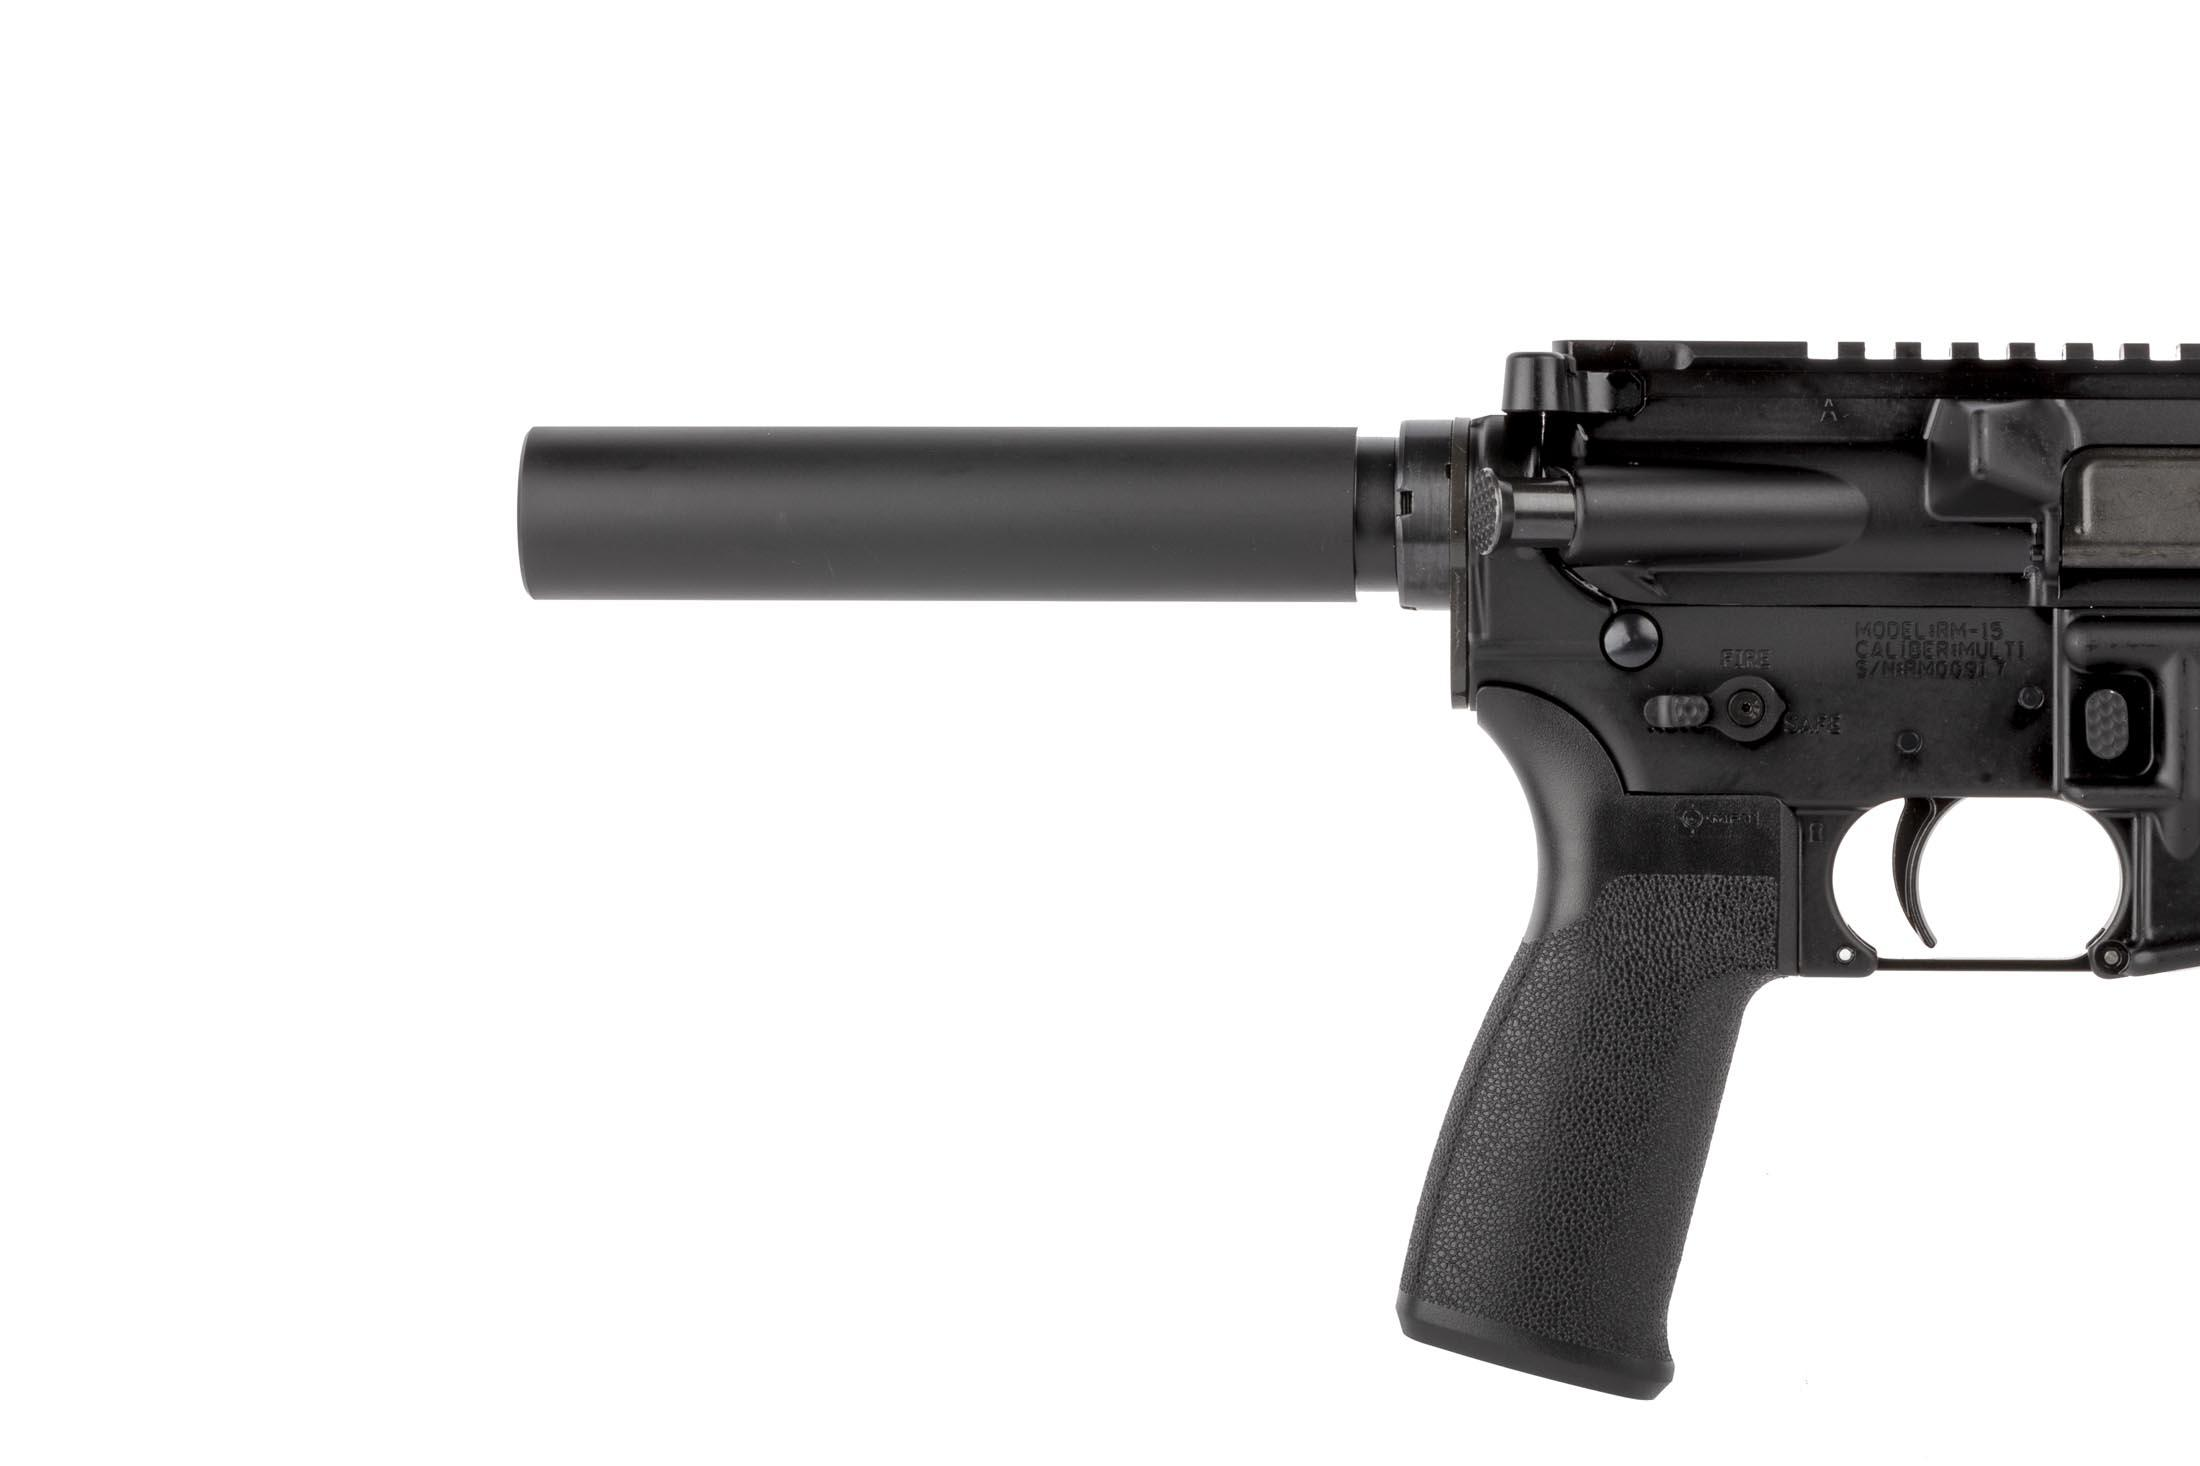 Radical Firearms AR-15 pistol with 10.5in 5.56 NATO barrel features an MFT pistol grip and a pistol buffer tube